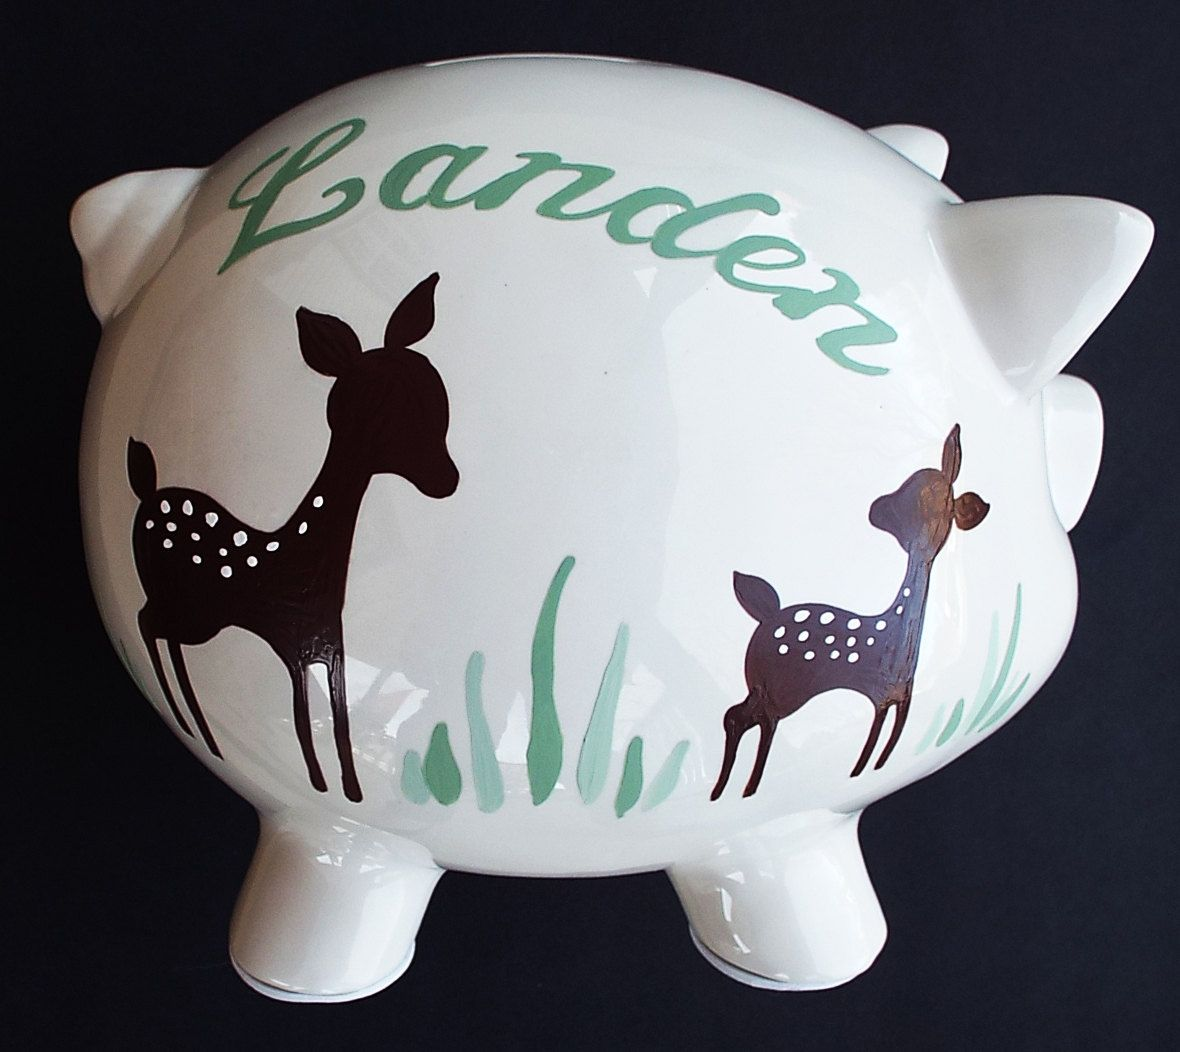 Personalized piggy bank custom boy girl hand painted baby shower personalized piggy bank custom boy girl hand painted baby shower or birthday gift by jumakardesigns on negle Choice Image